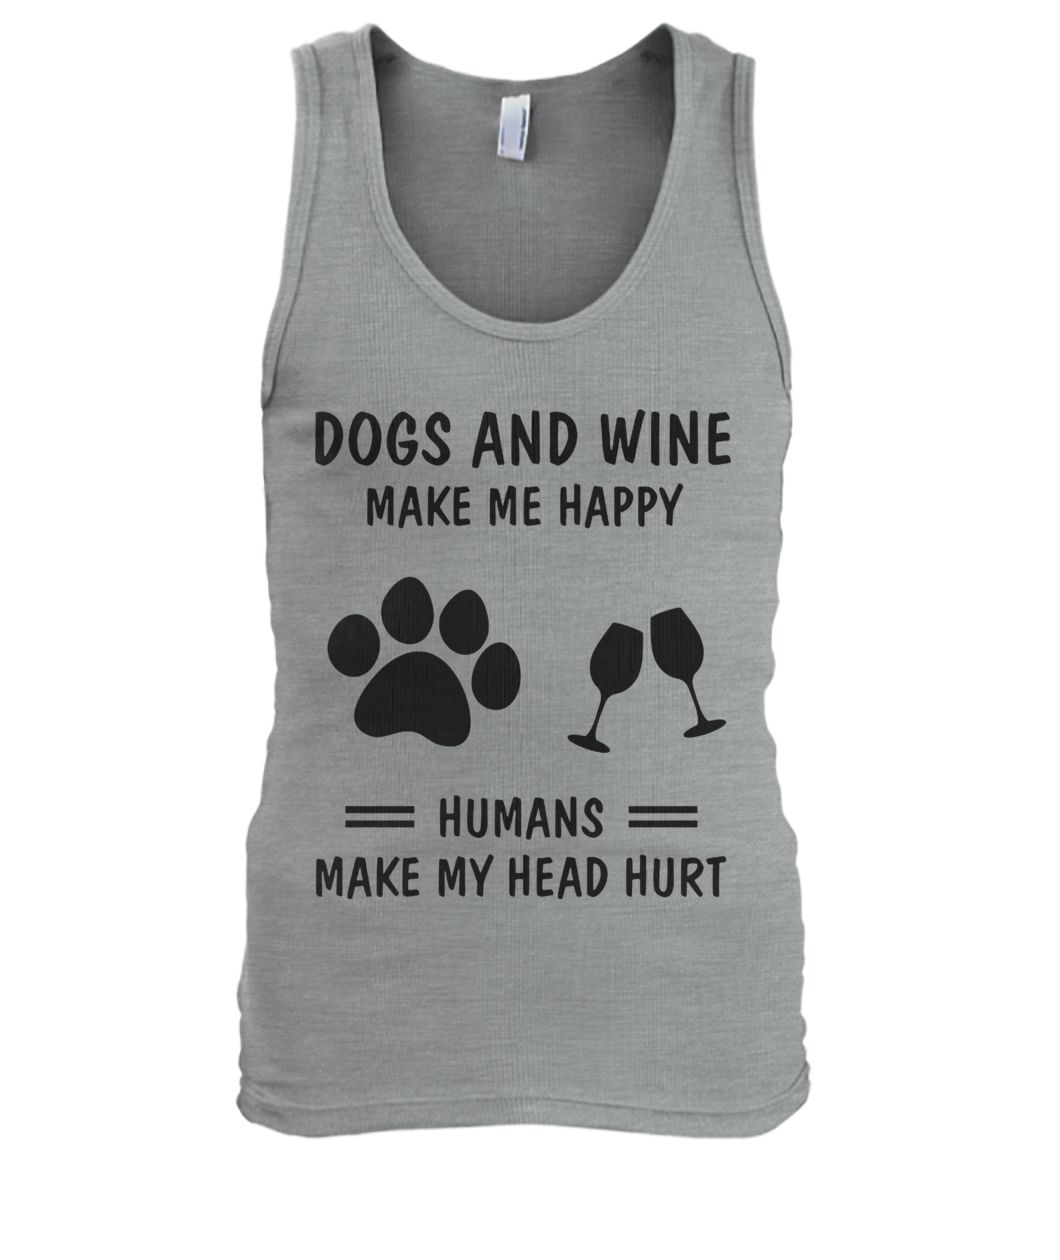 Dogs and wine make me happy humans make my head hurt tank top